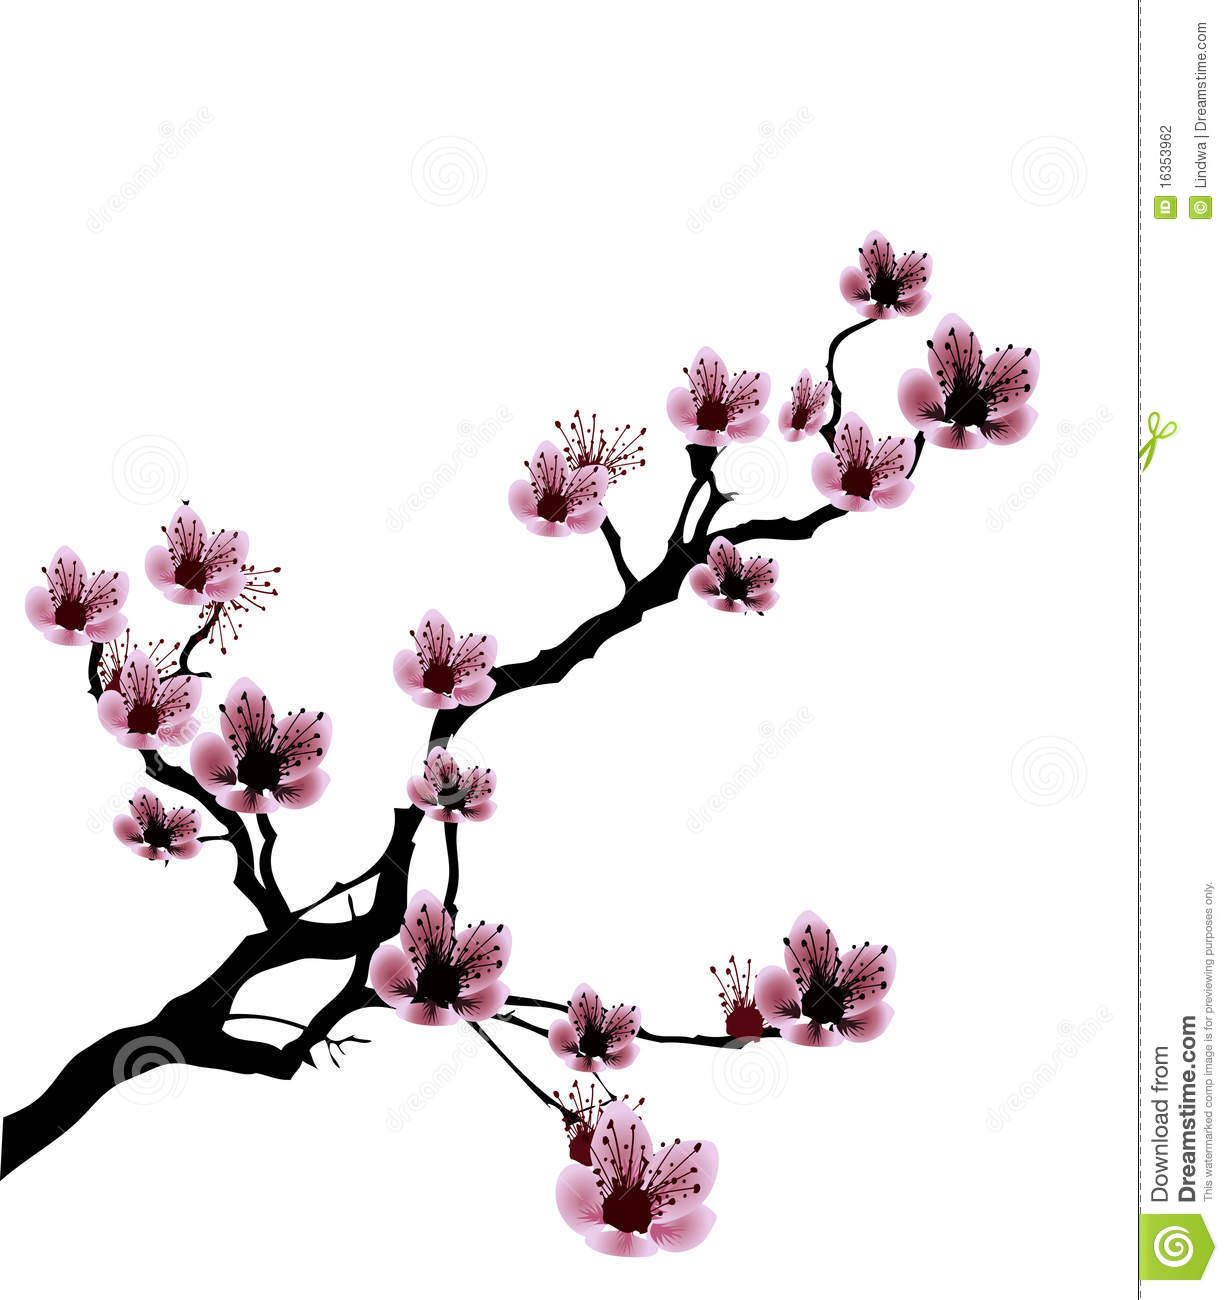 Cherry Blossom Tree Black And White: Black And White Cherry Blossom Drawings